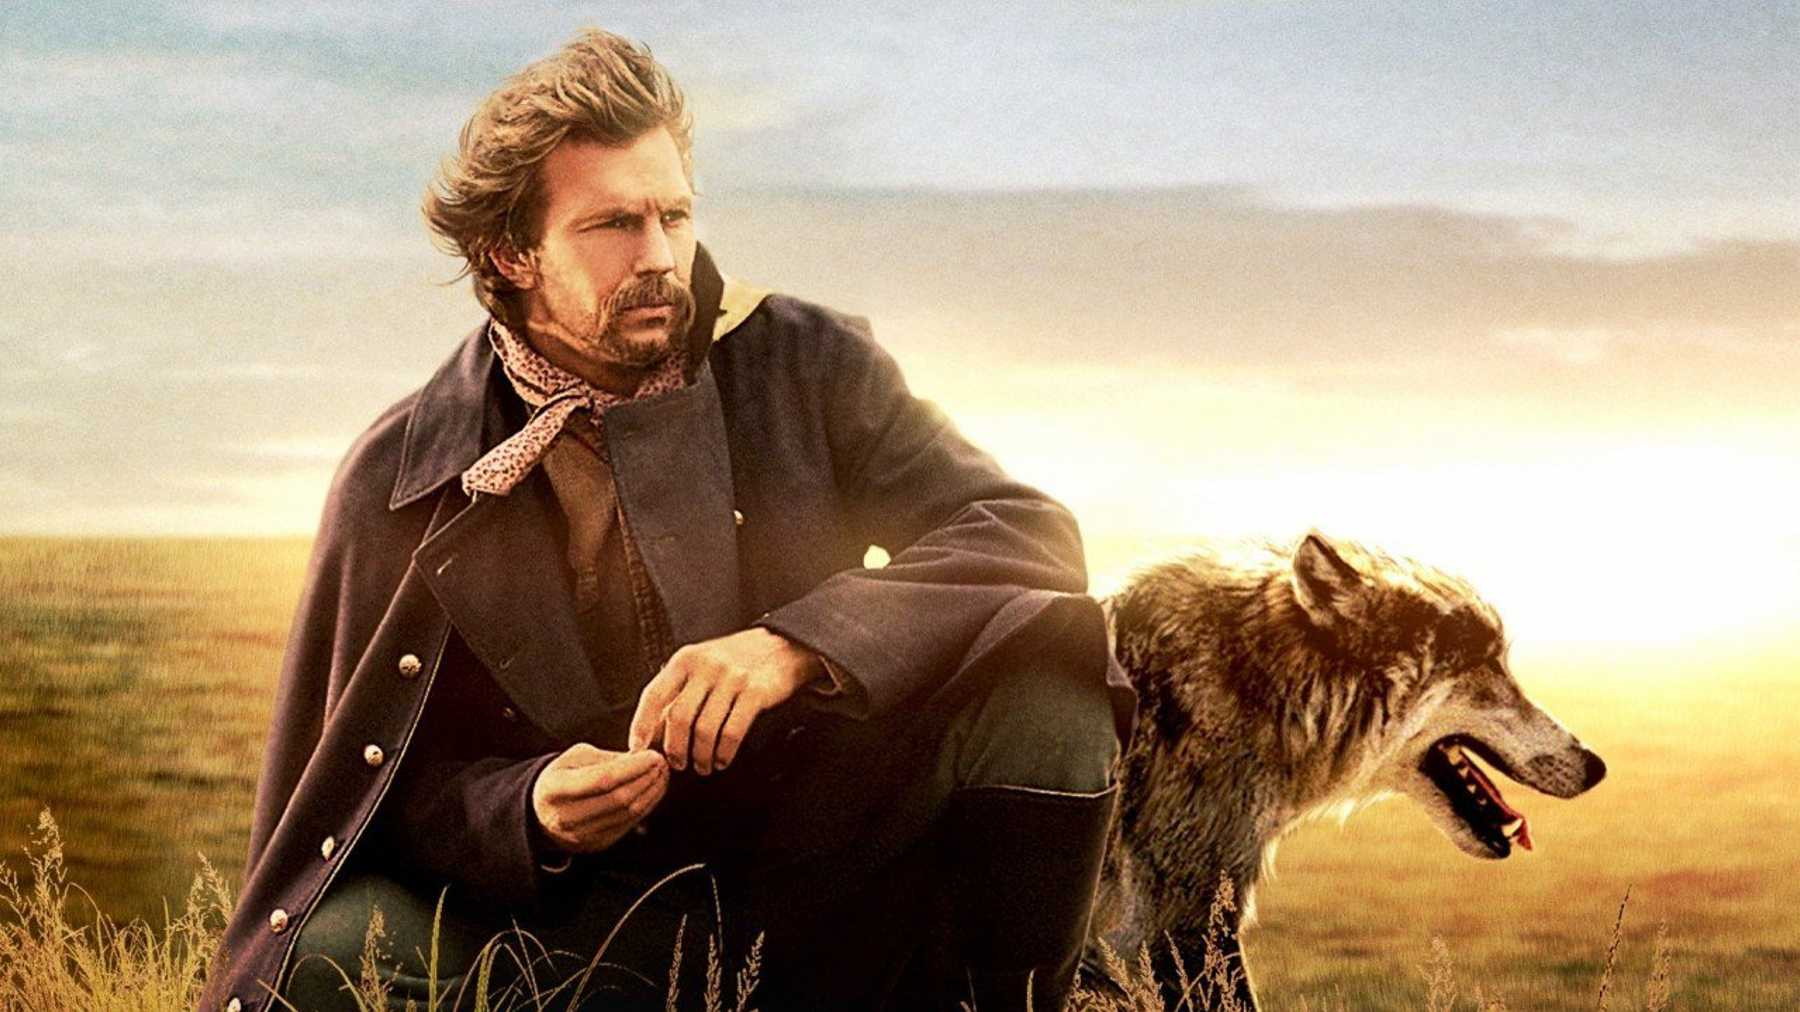 Dances With Wolves (1991)